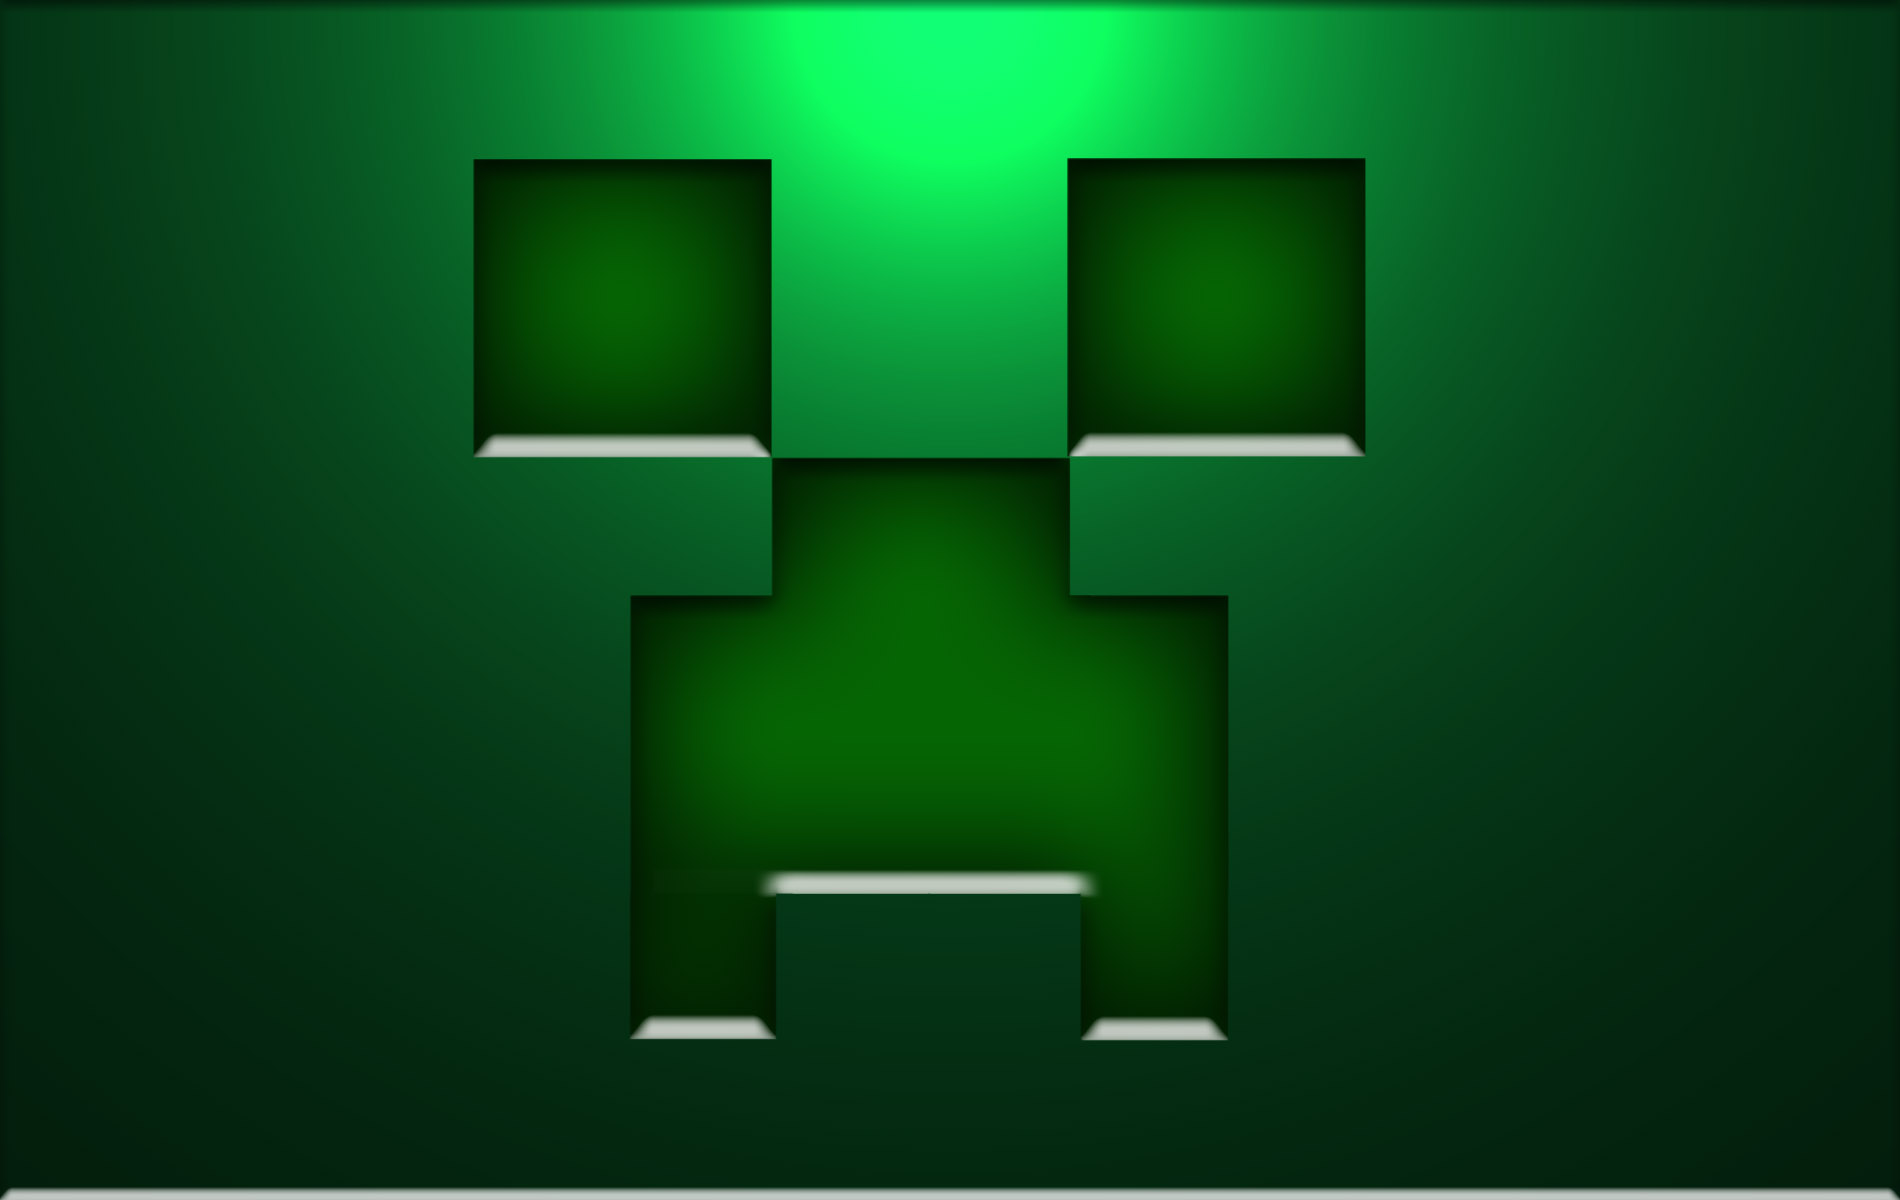 ... - Creeper Minecraft Wallpaper Creeper Minecraft Wallpaper Creeper